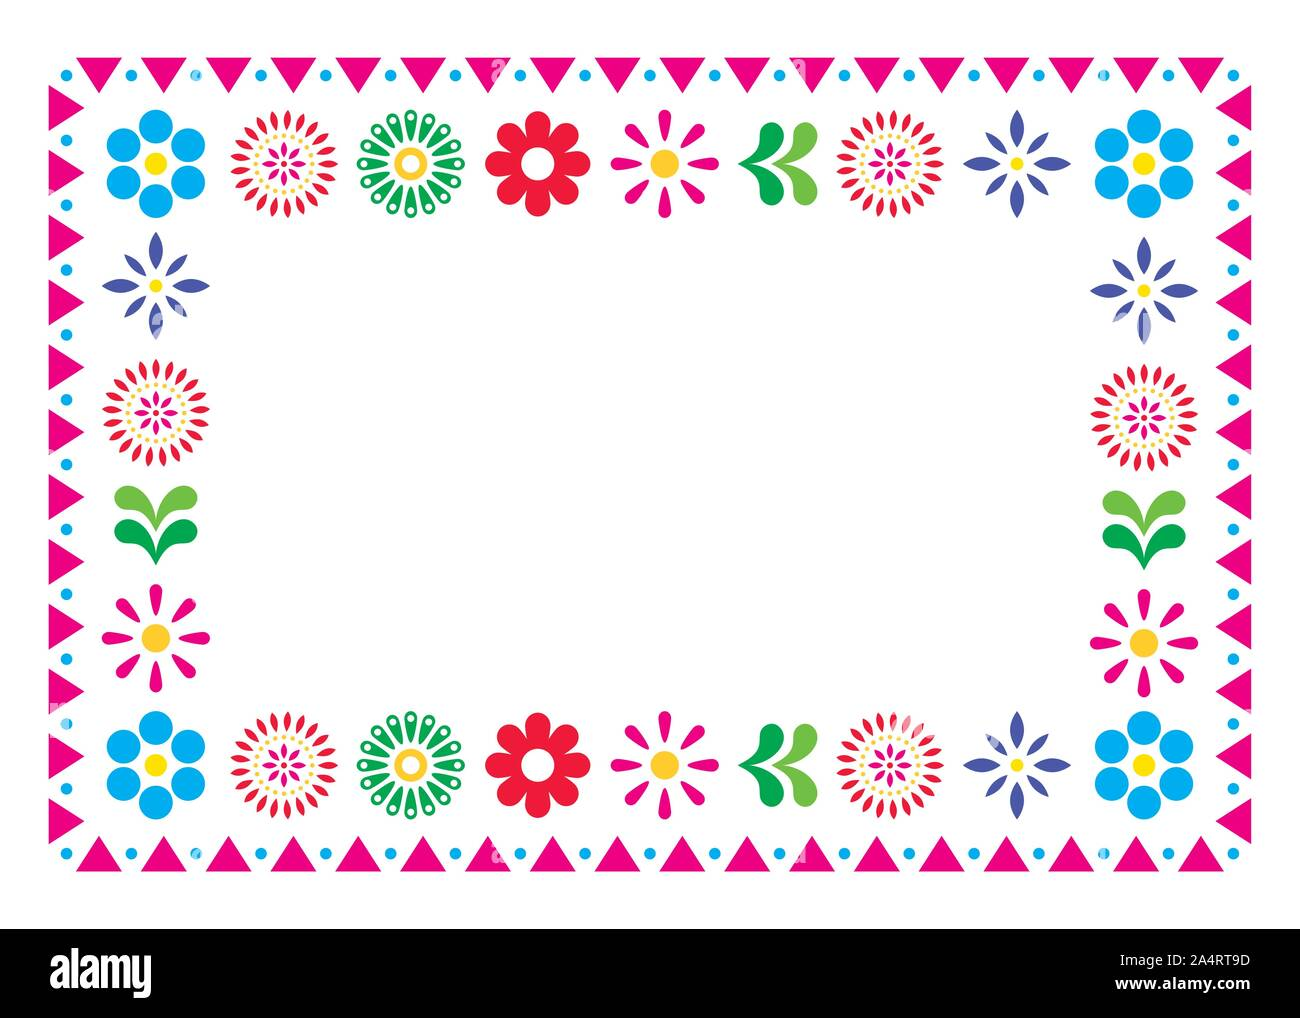 Mexican vector greeting card or wedding invitation, decorative design with flowers and abstract shapes inspired by traditional art from Mexico Stock Vector